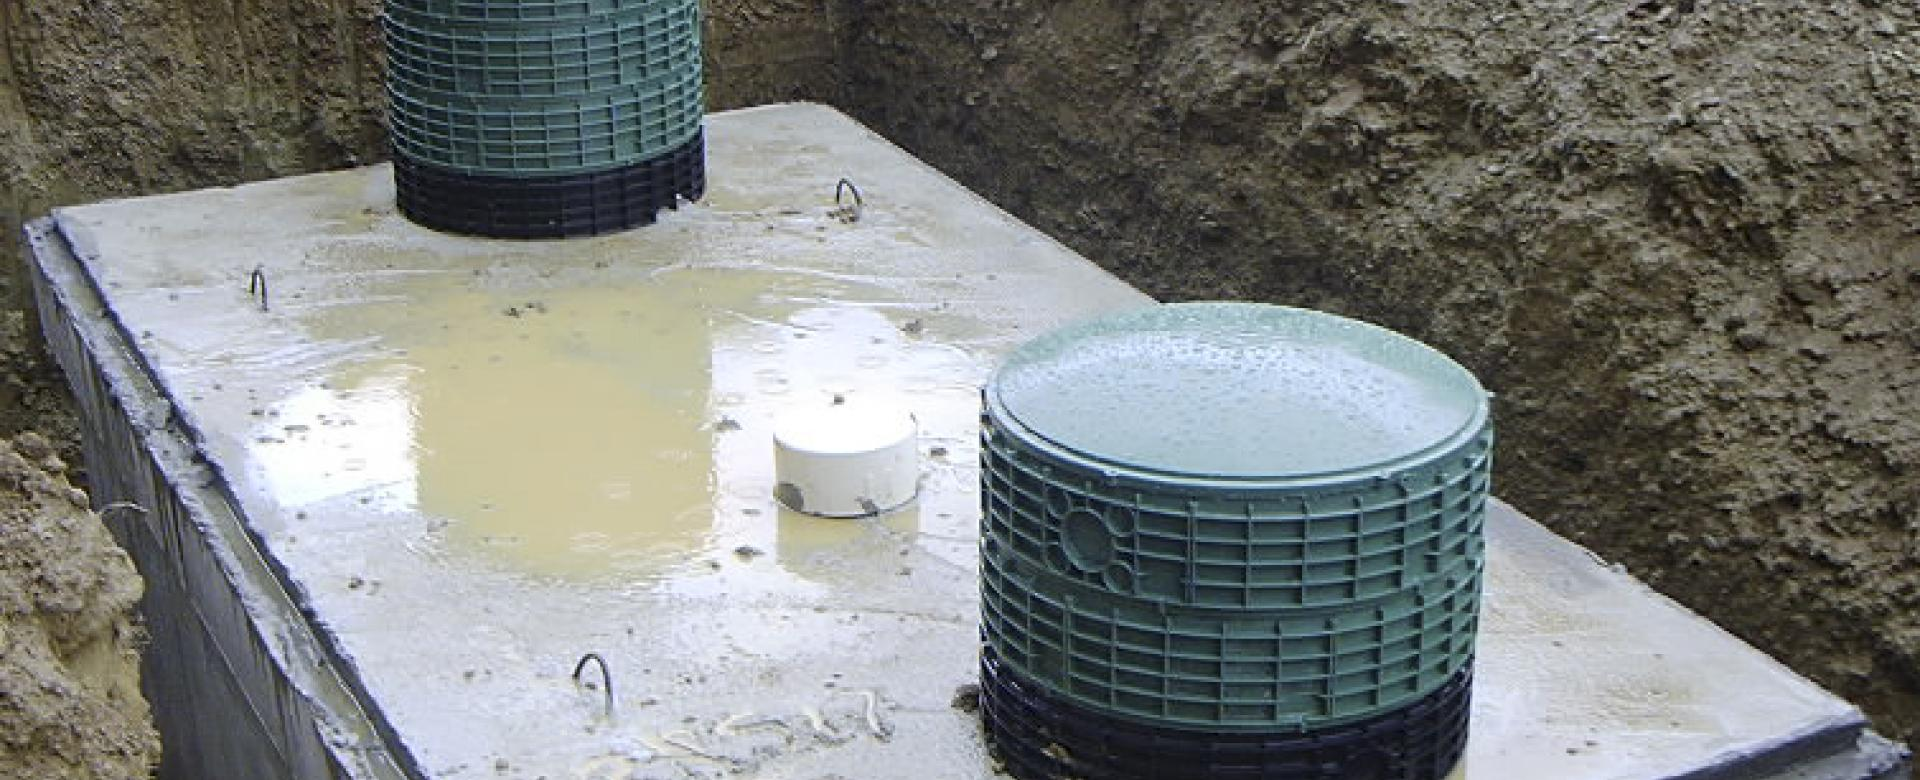 Pacific Group Developments Septic Tanks Victoria, Duncan BC